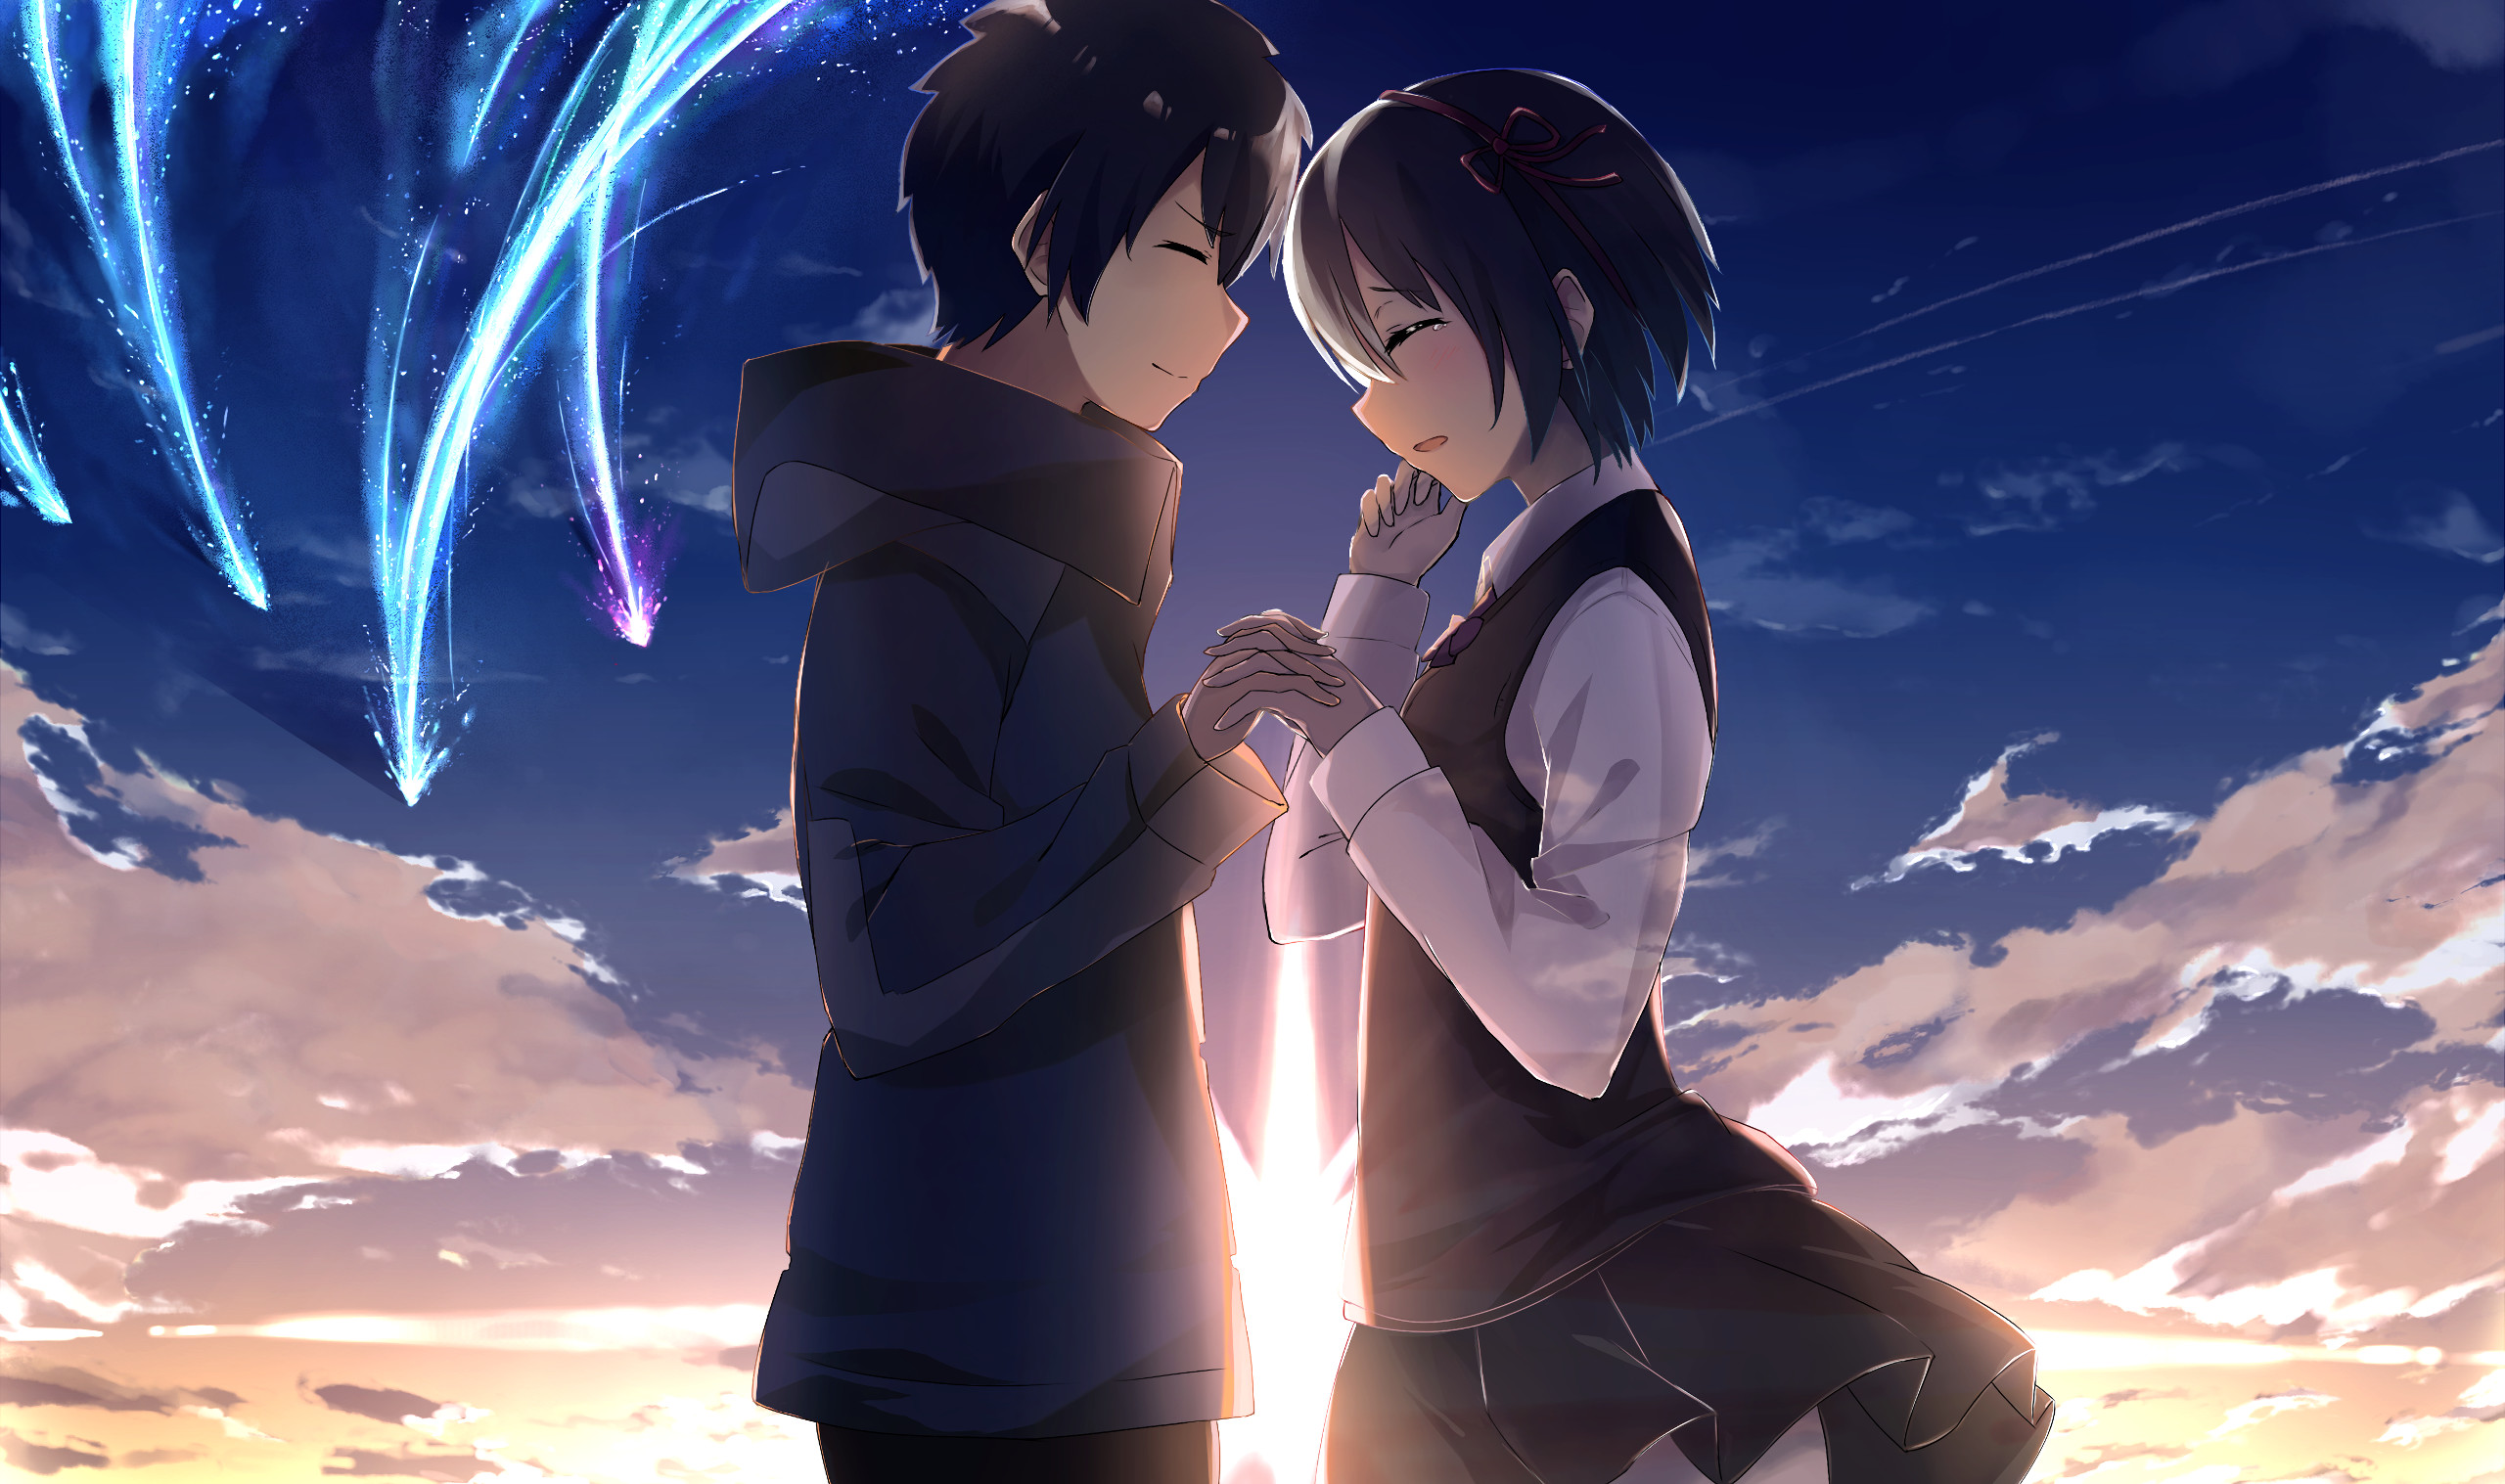 Baixar - Taki Mitsuha Kimi No Na Wa , HD Wallpaper & Backgrounds